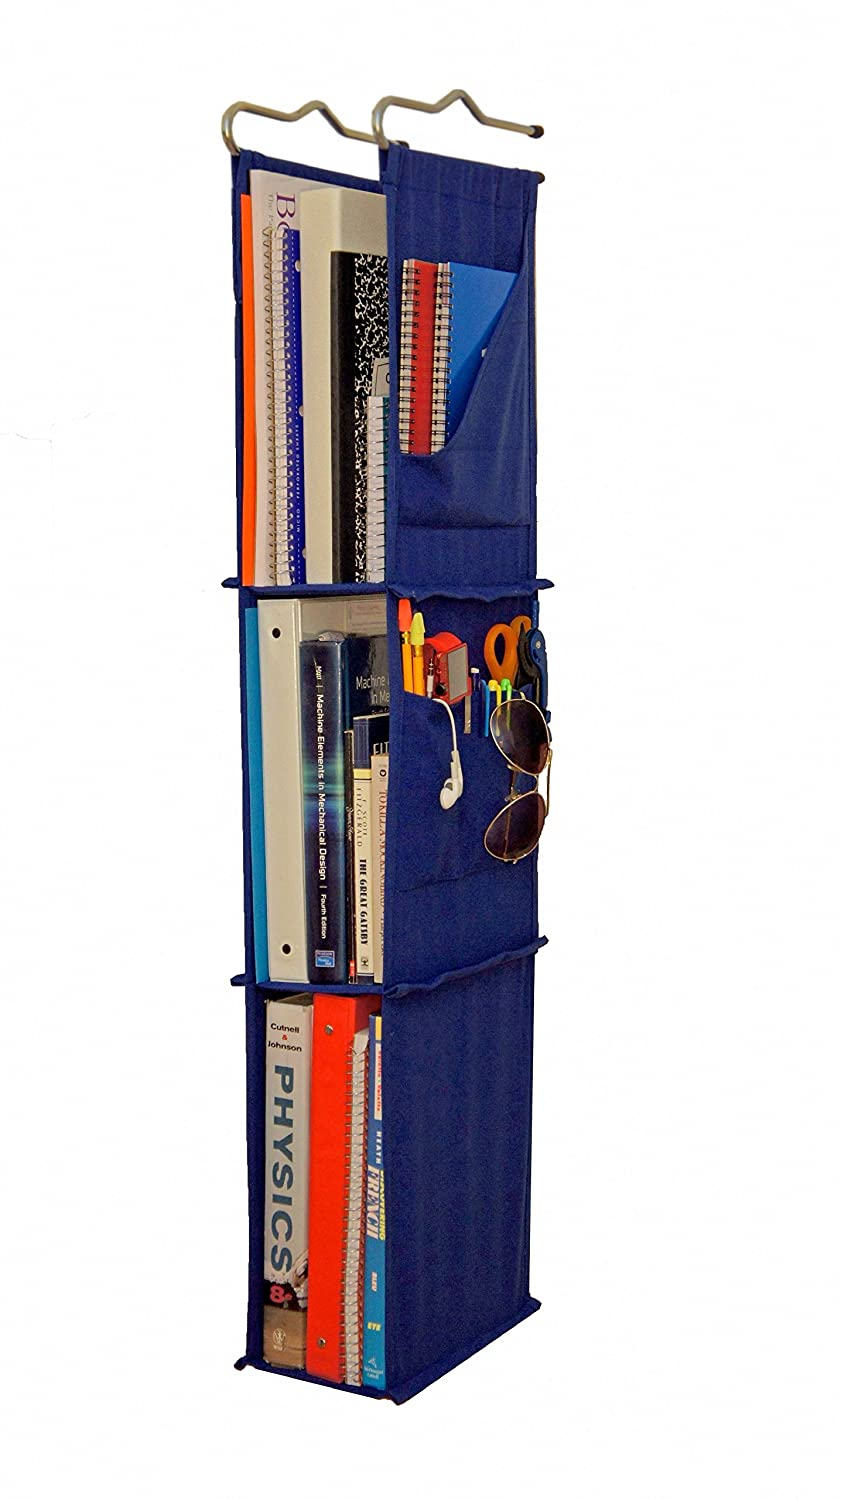 Locker Ladder Locker Organizer Hanging Shelves, Sewn and Assembled in USA (Blue). Del Designs 12259